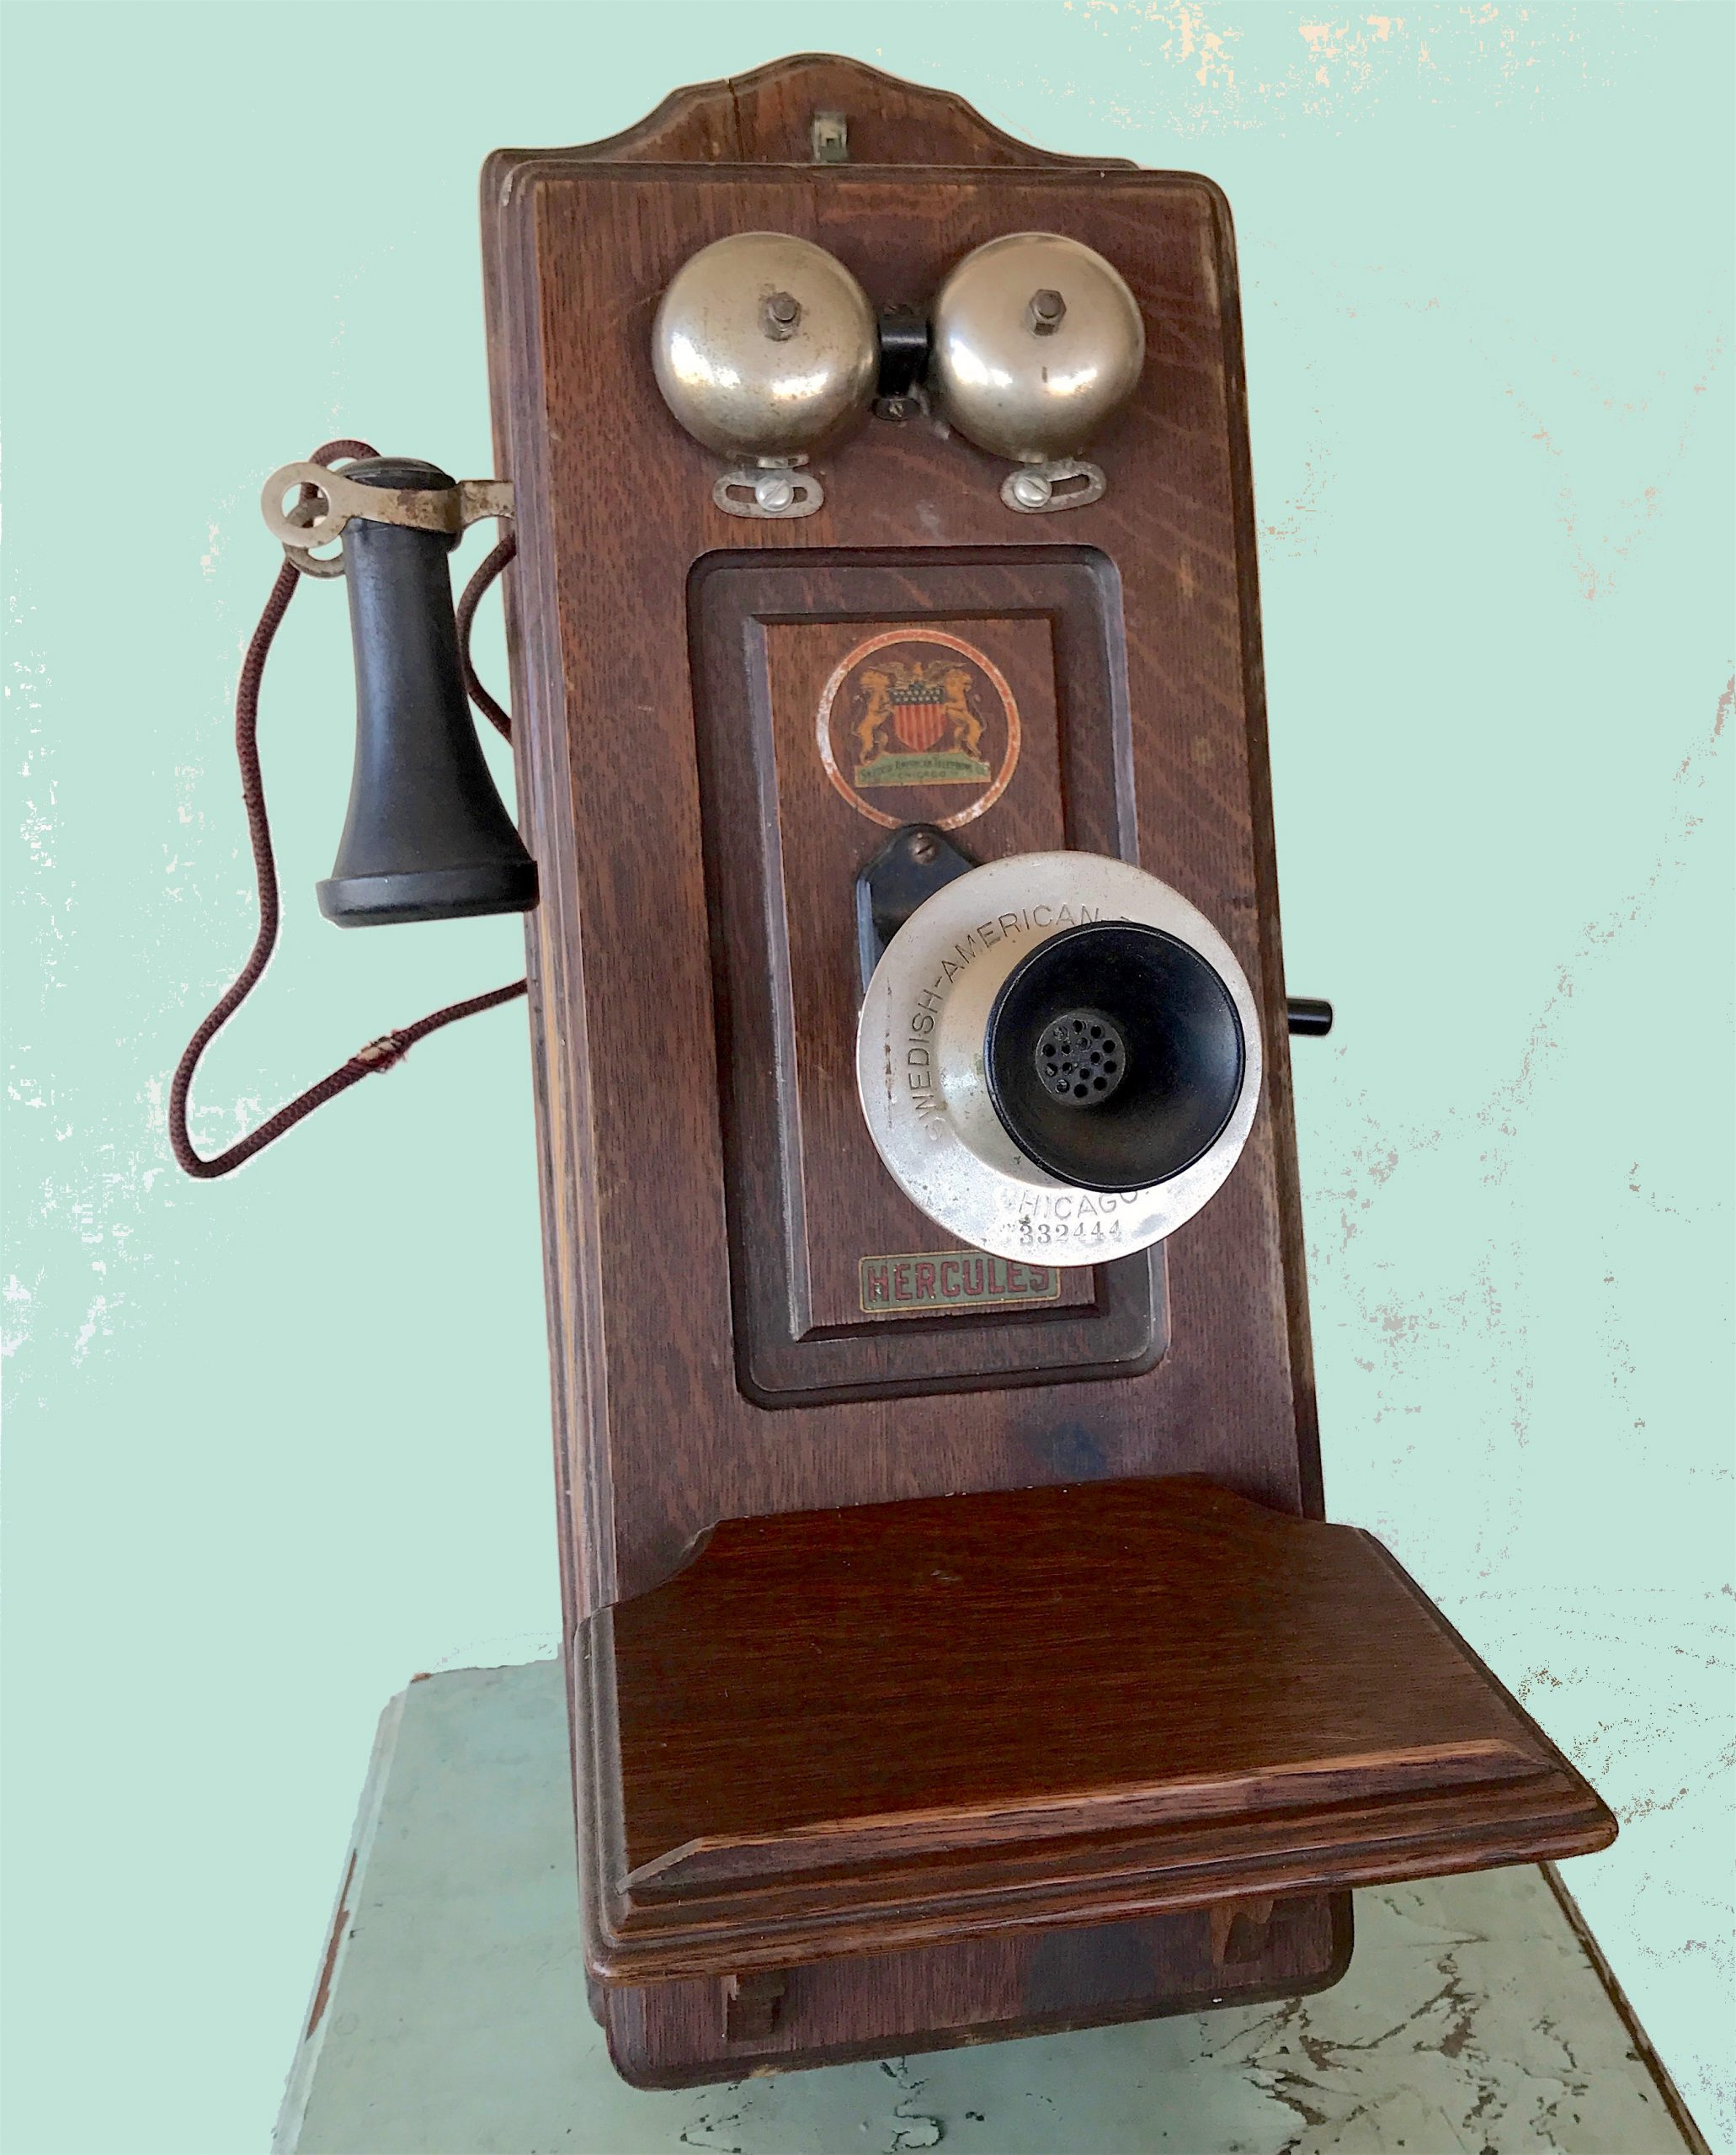 Swedish-American Telephone Co., est. 1899